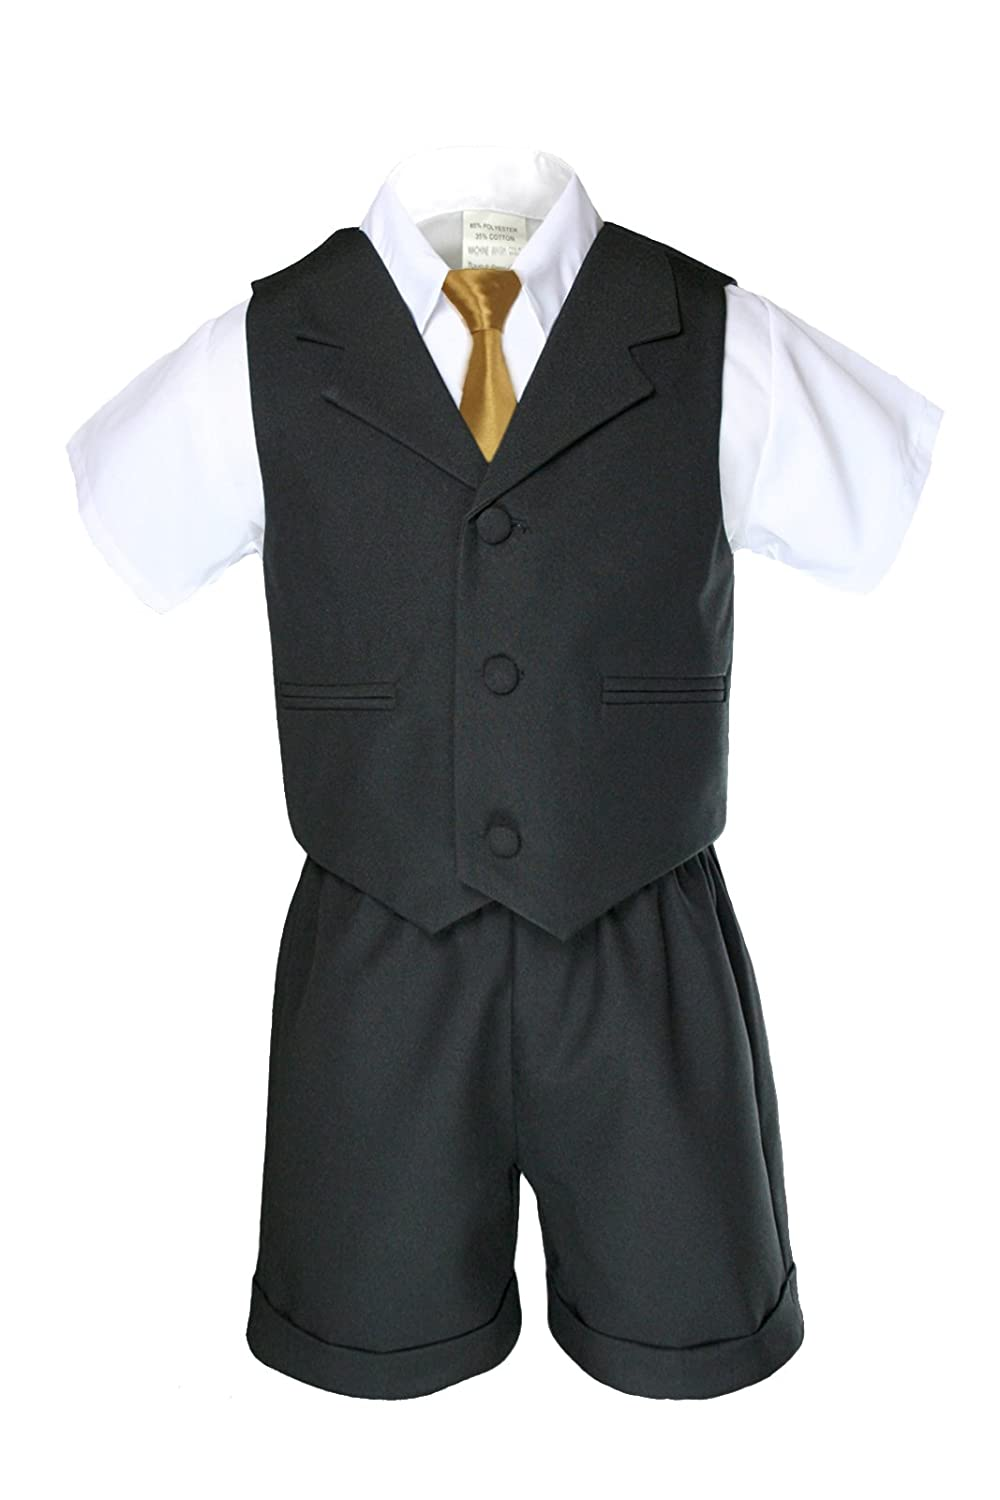 Boys Black Shorts Vest Sets Suits Outfits Extra Gold Necktie Baby Toddler (S:(0-6 months))